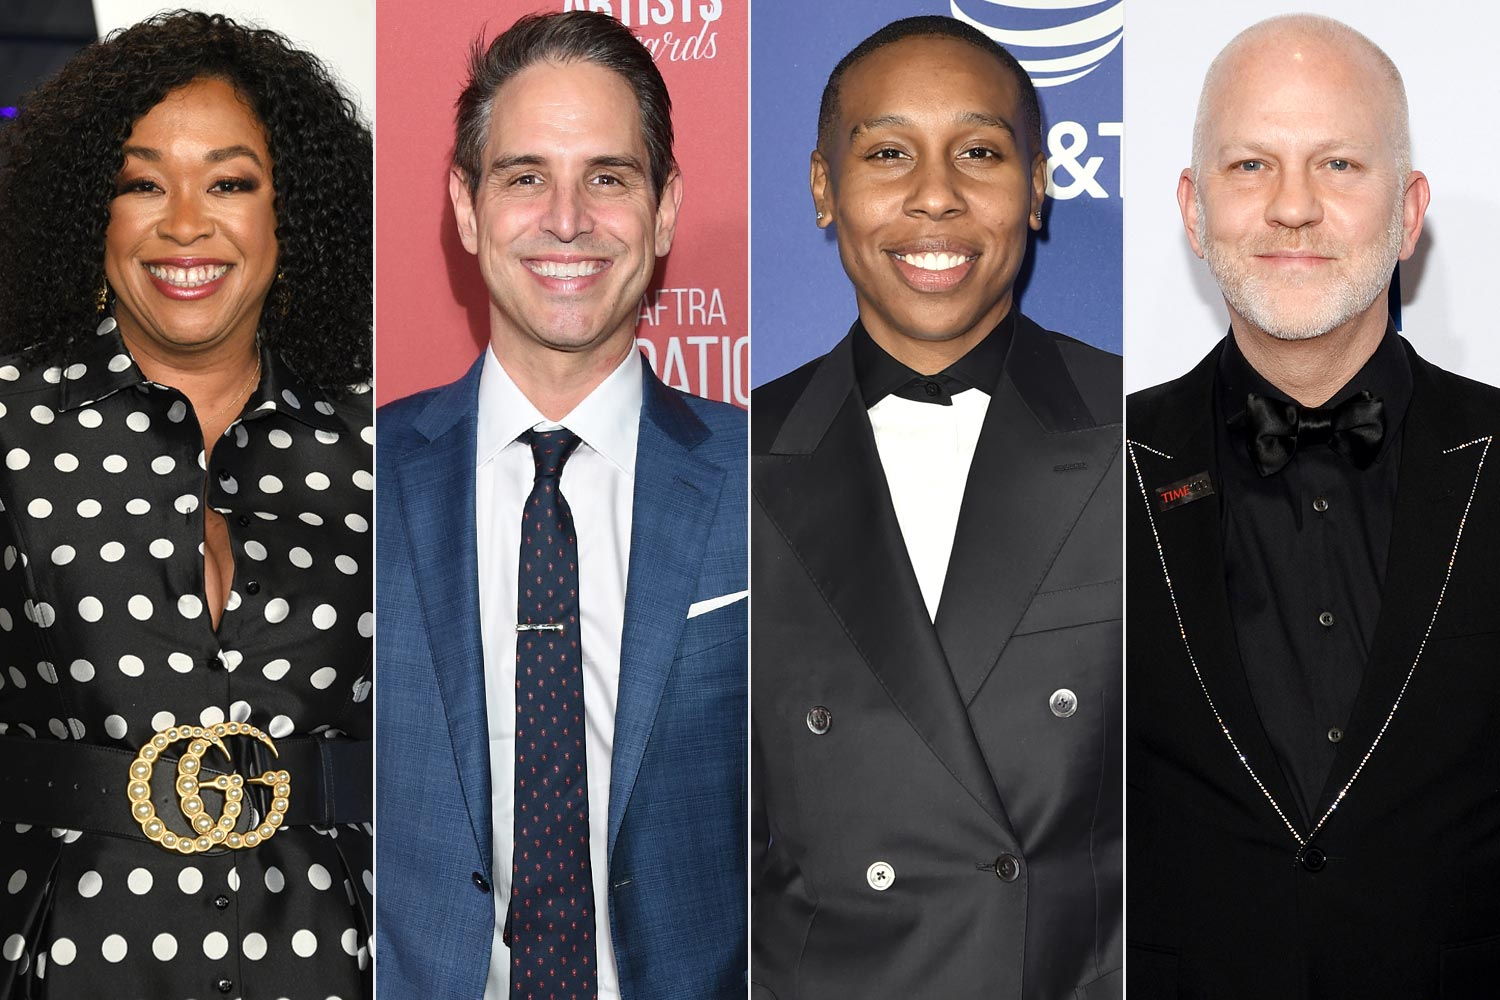 GLAAD report Shonda Rhimes, Greg Berlanti, Lena Waithe, and Ryan Murphy